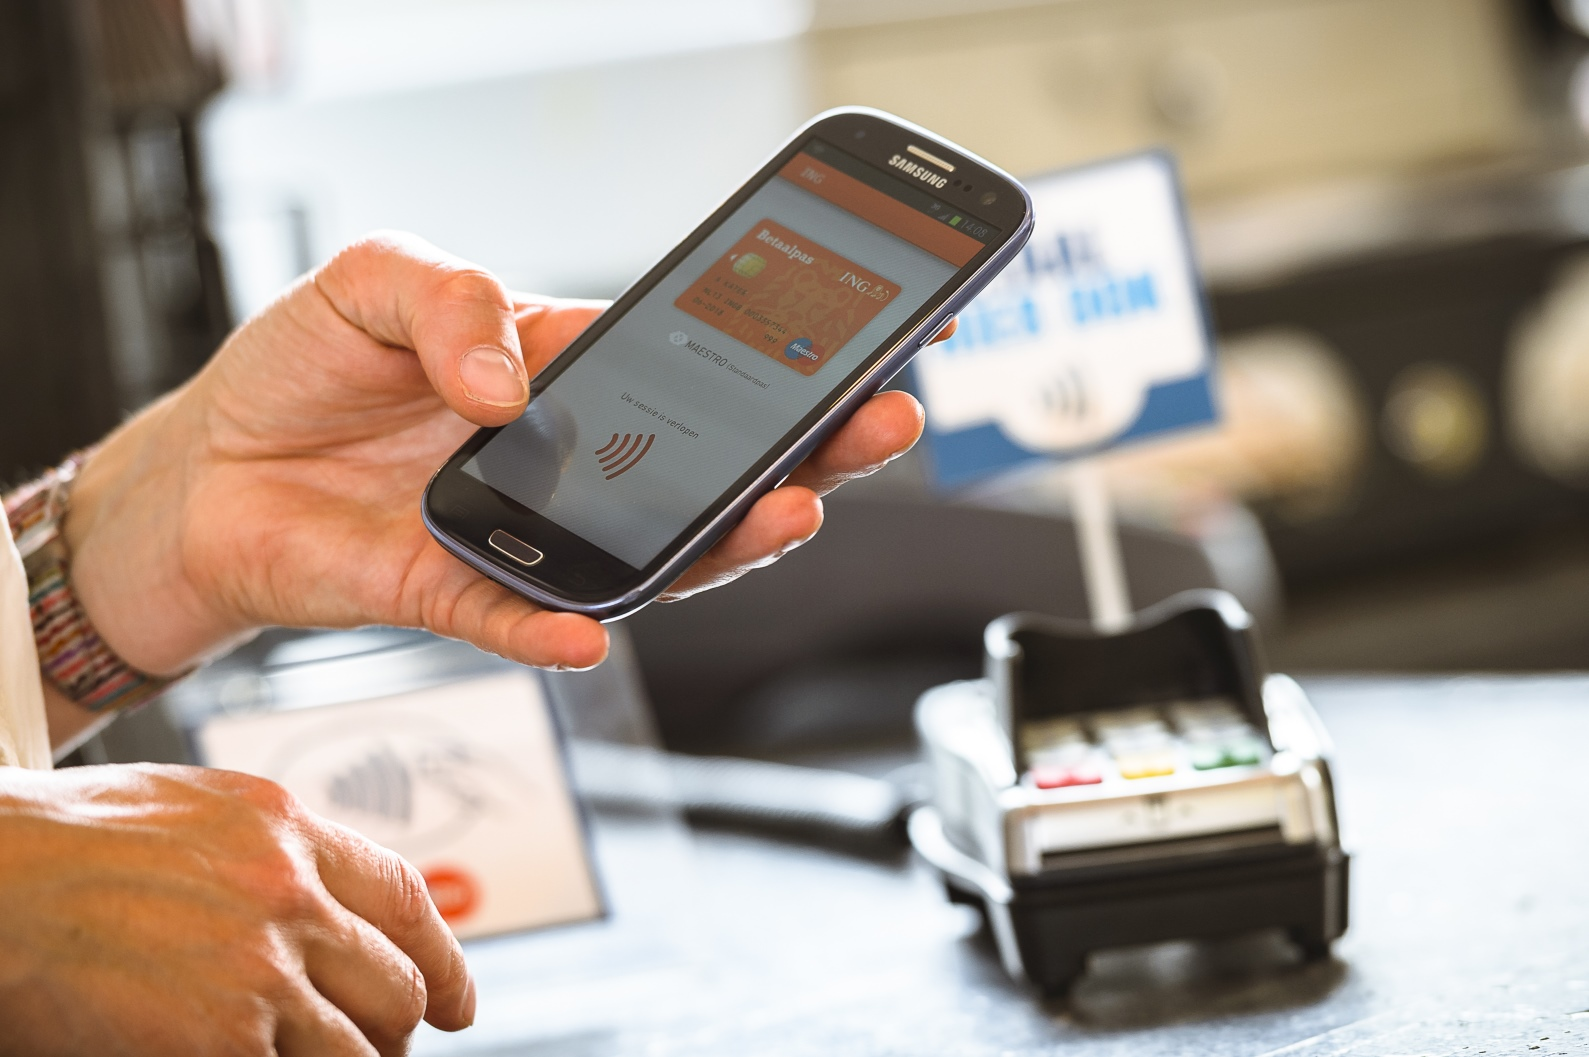 Security Concerns Stalling In-app Payment, Skrill Study Finds